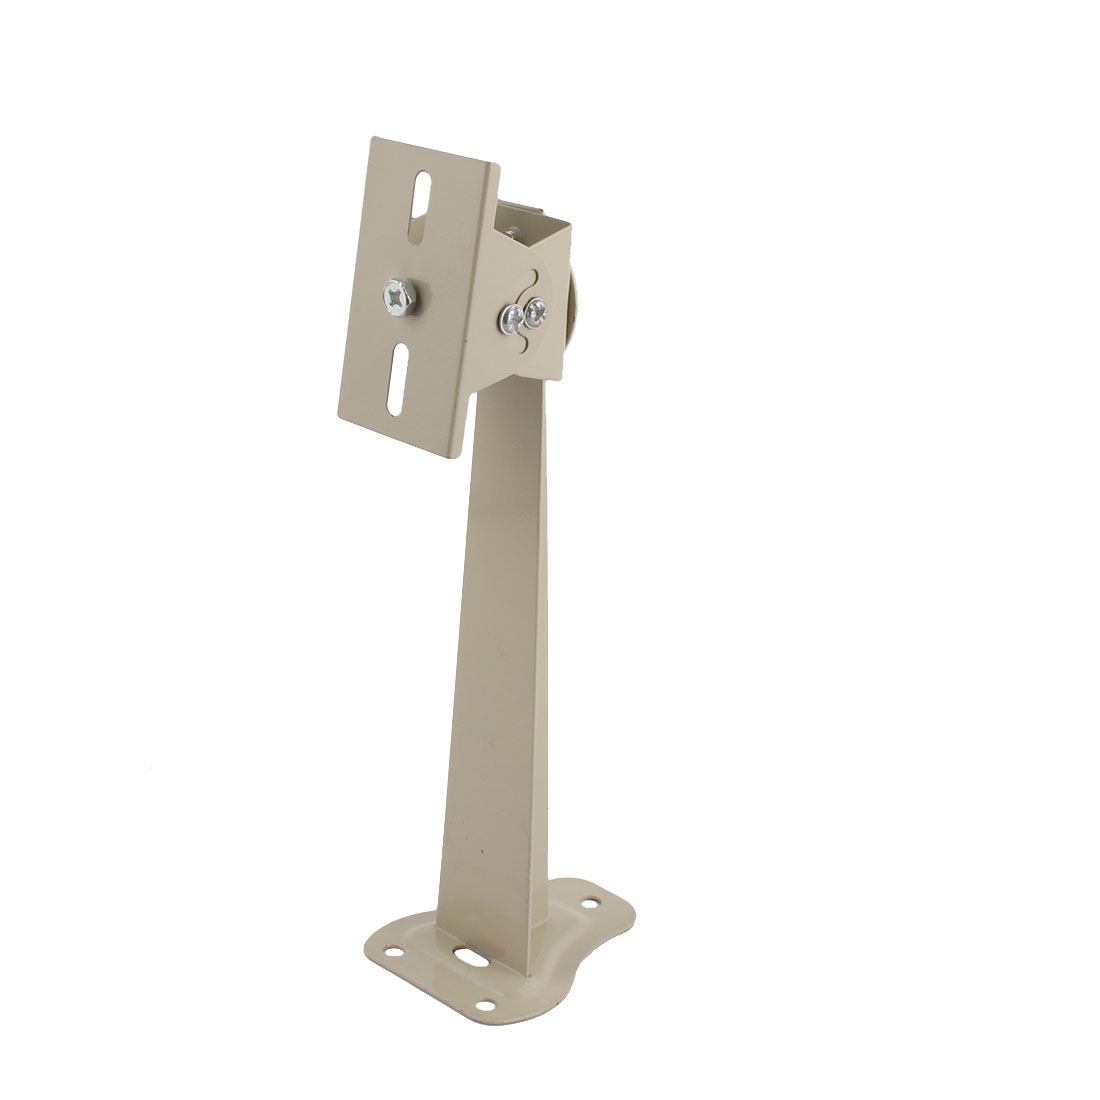 Outdoor CCTV Security Camera Wall Ceiling Mount Metal Bracket Stand 24cm Height